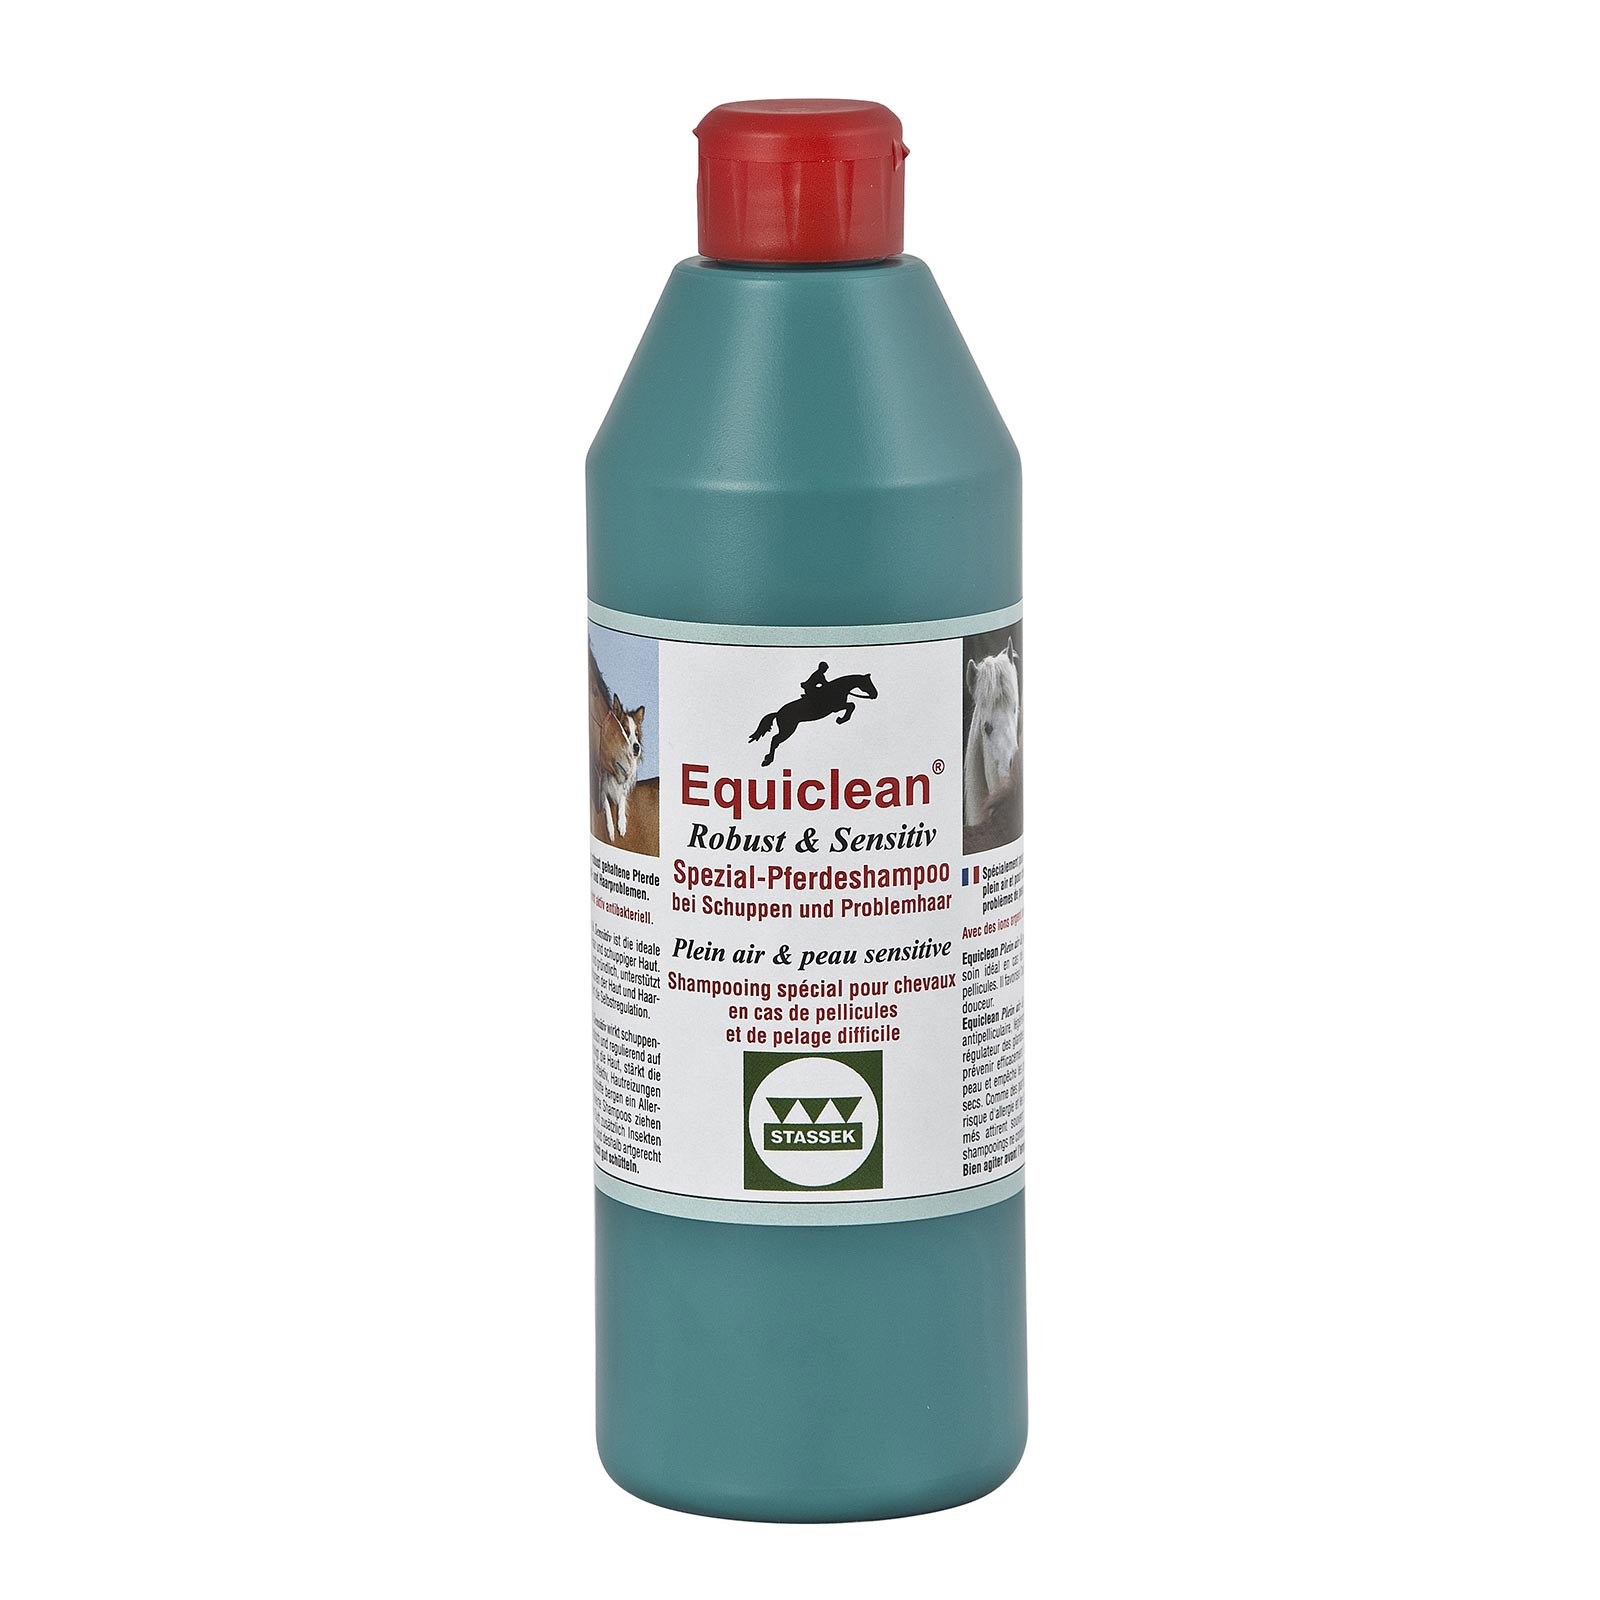 Stassek Equiclean Outdoor schampo 500 ml